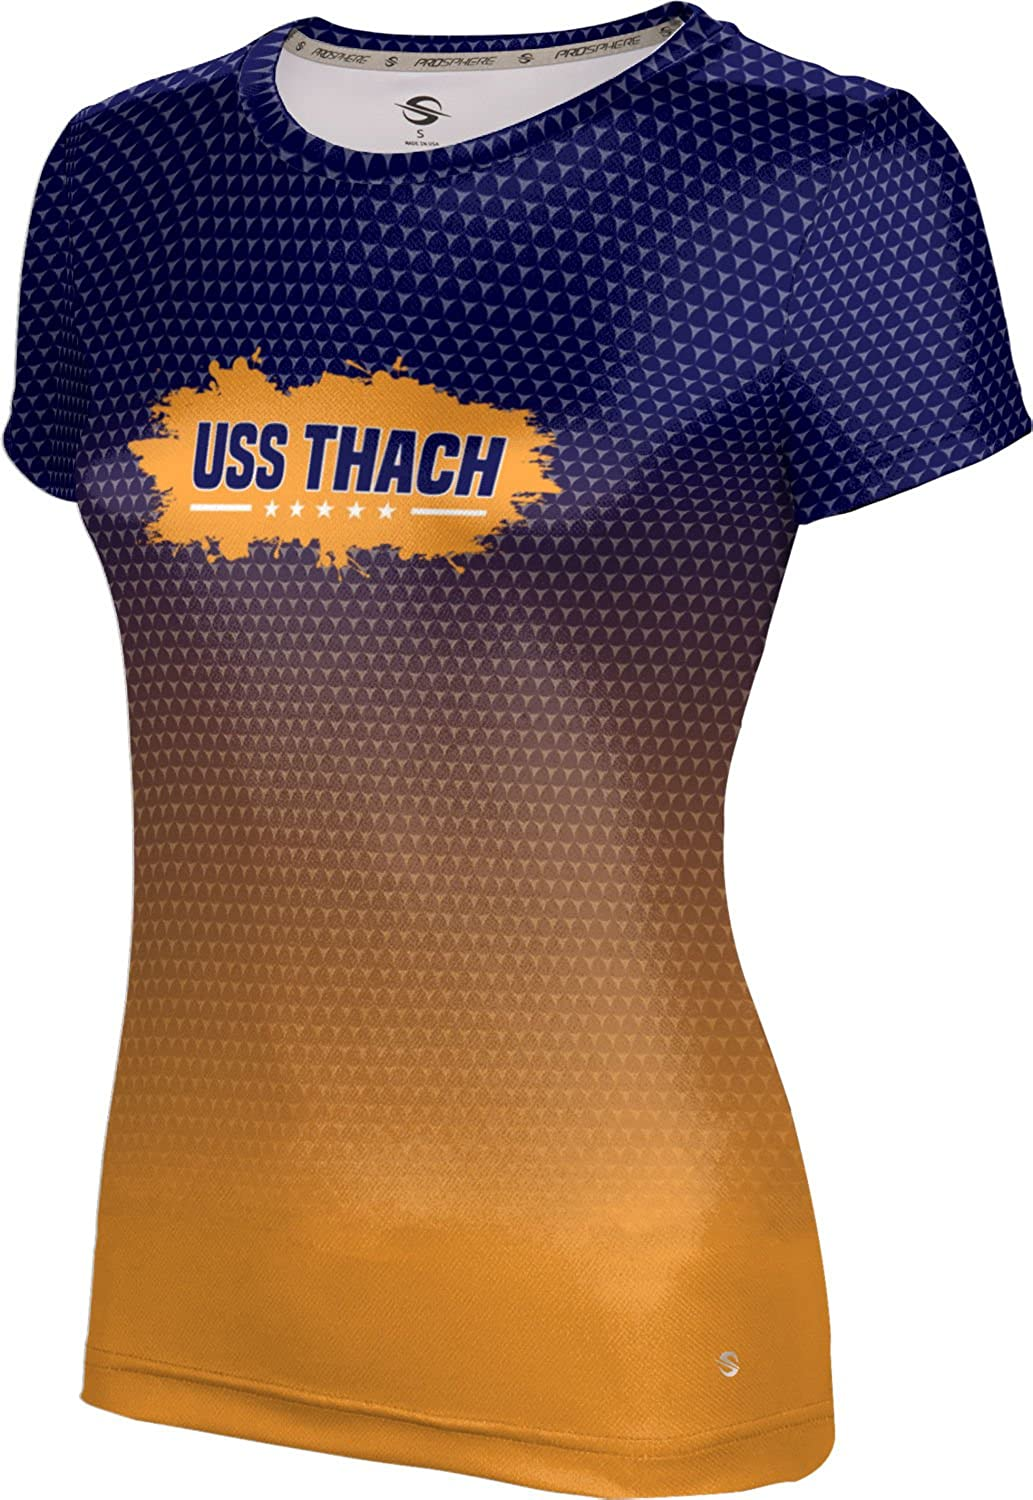 ProSphere Women's USS Thach Military Zoom Tech Tee